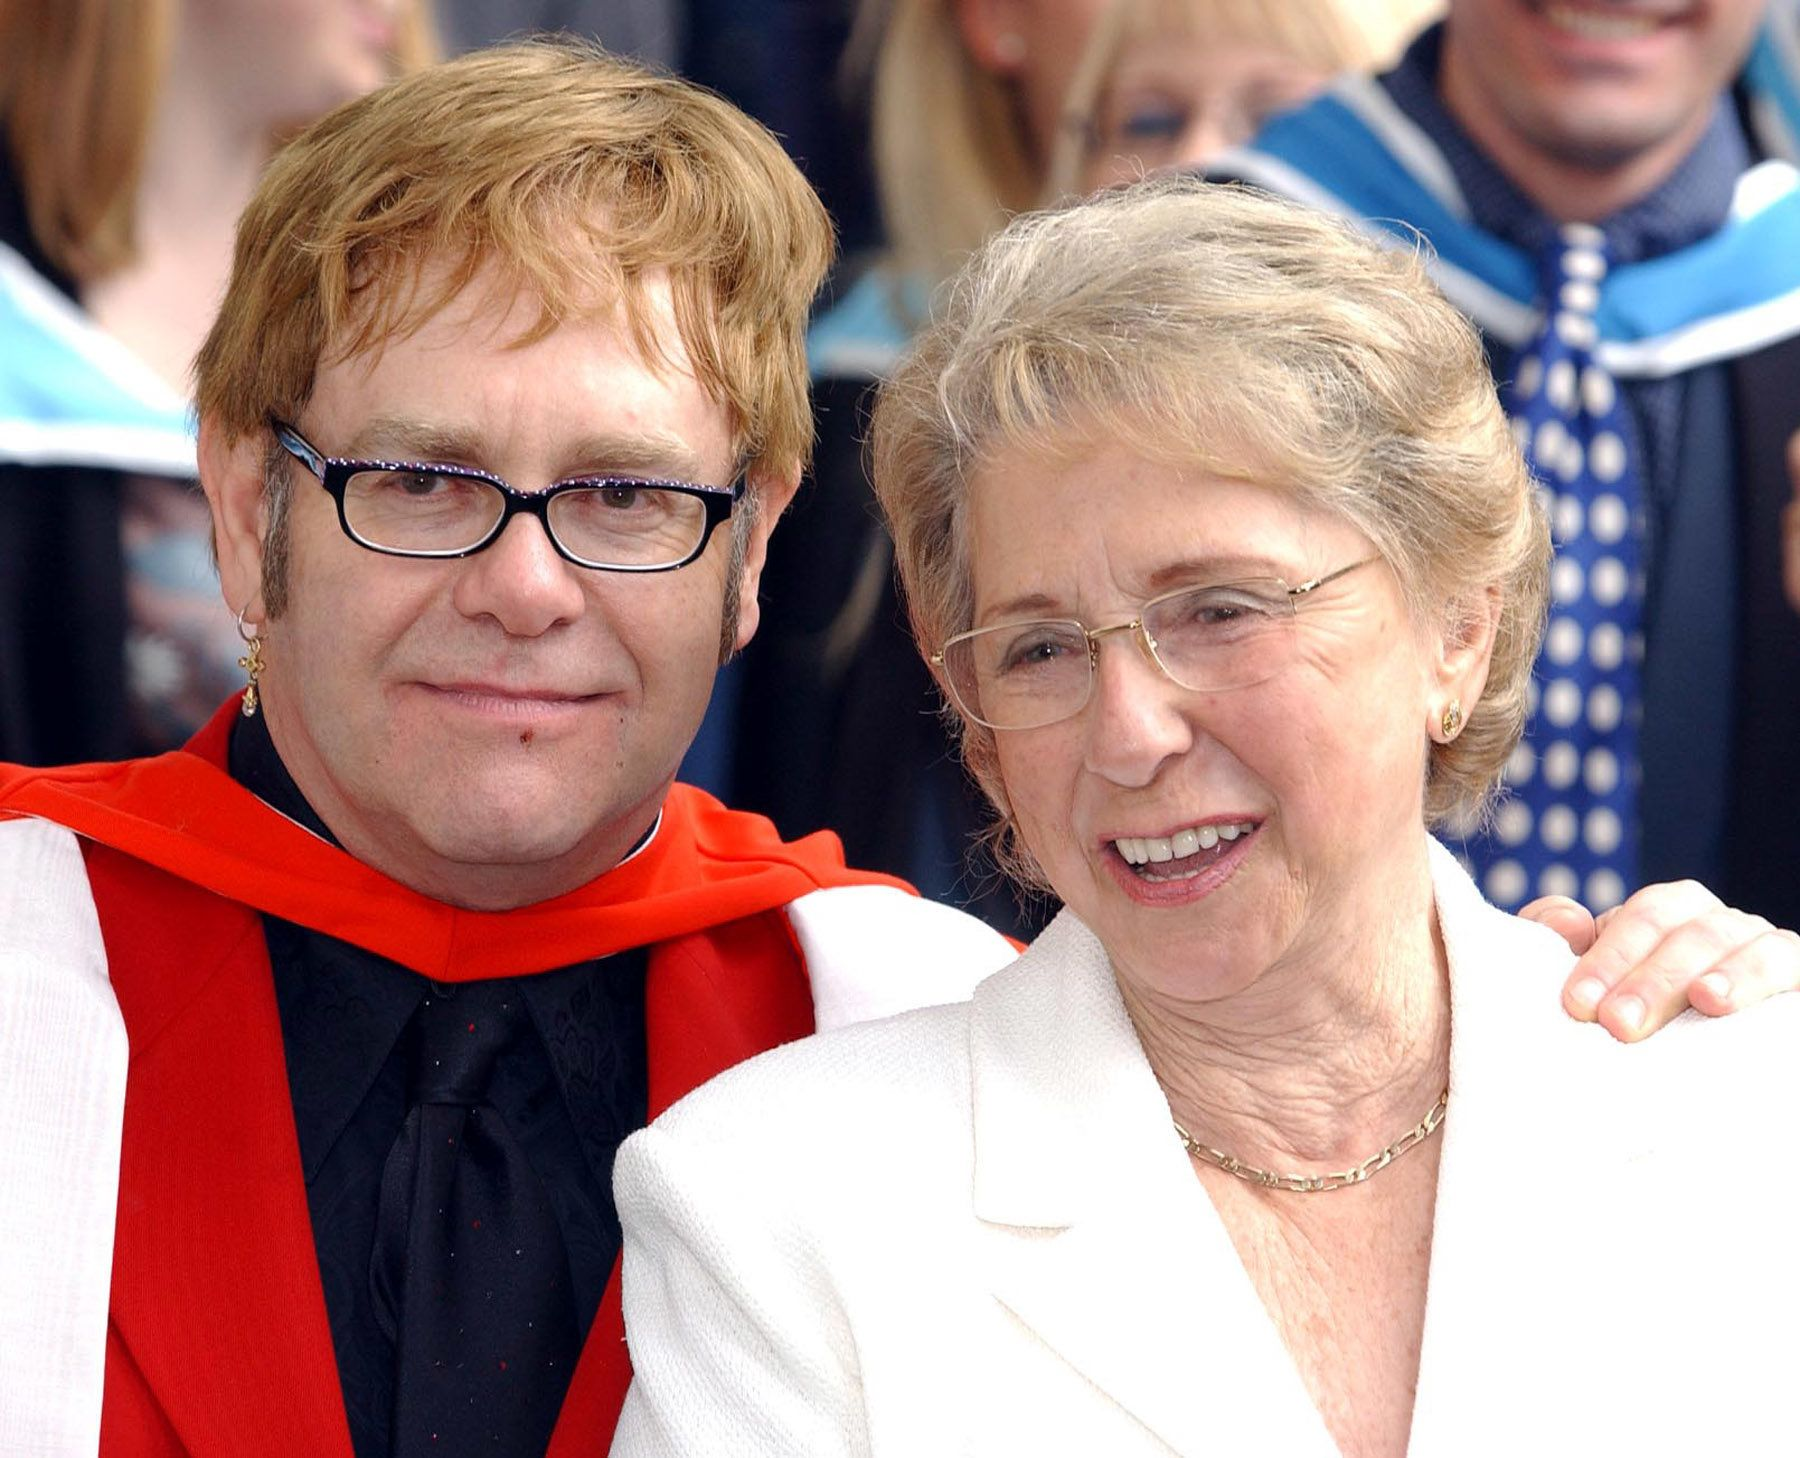 Elton John 'In Shock' Following The Death Of His Mother Sheila Farebrother